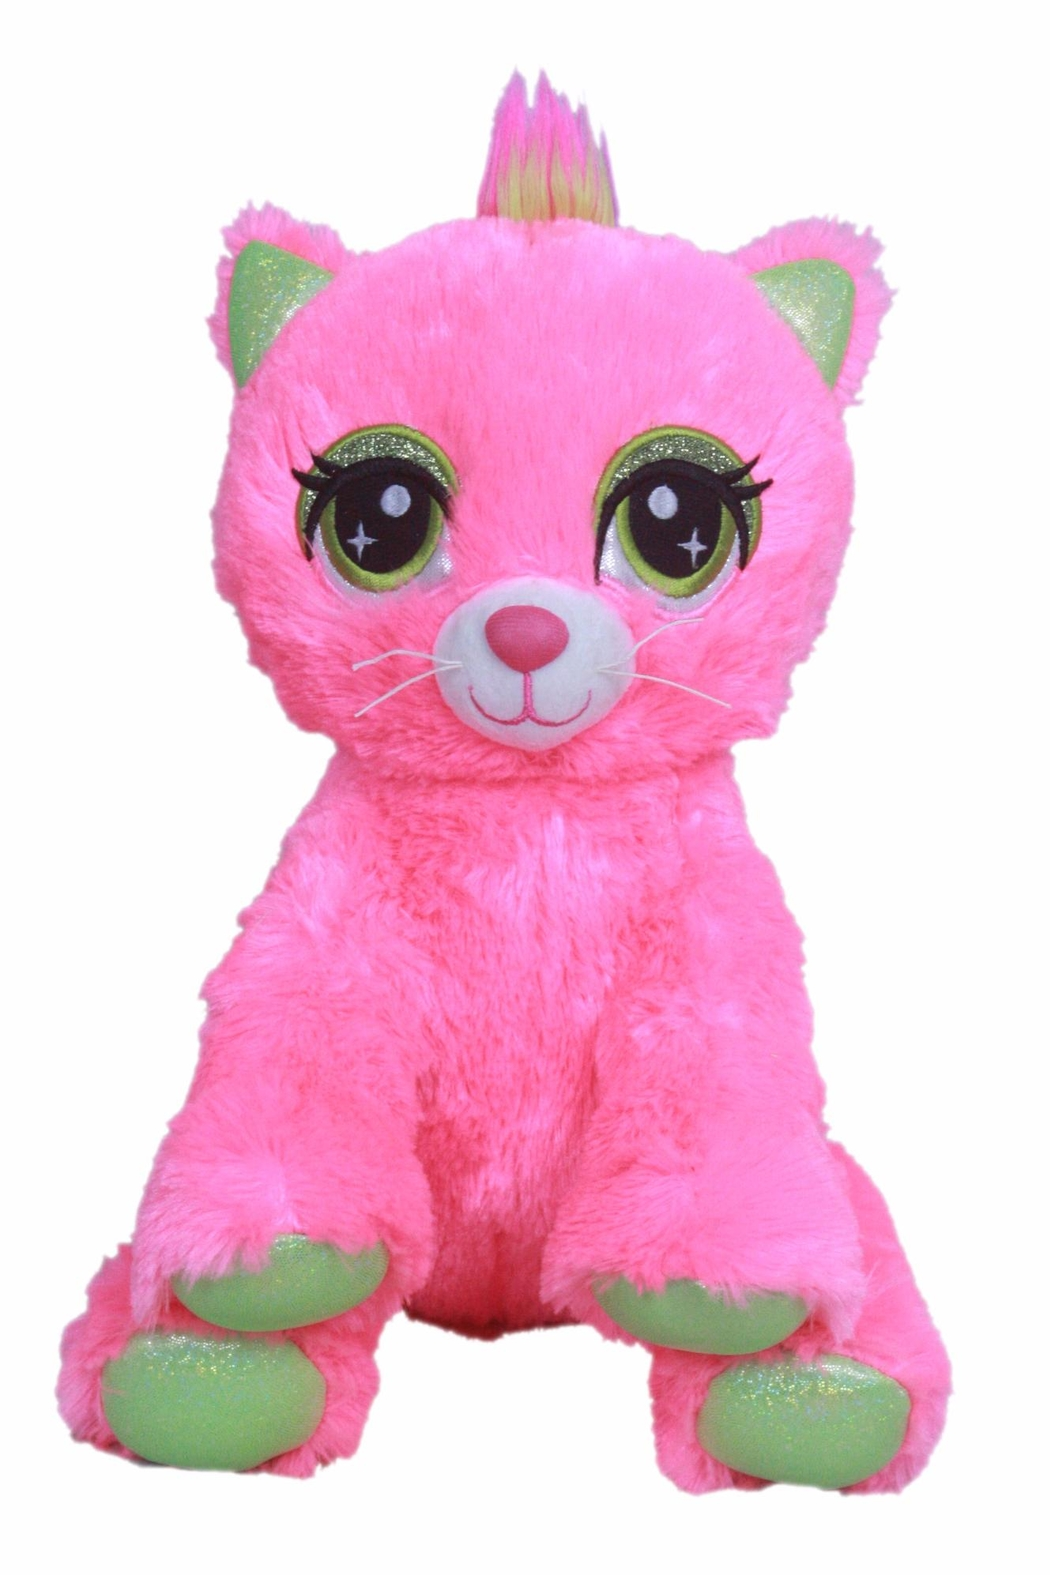 Cuddles and Friends Make-Your-Own Pink Kitty - Main Image